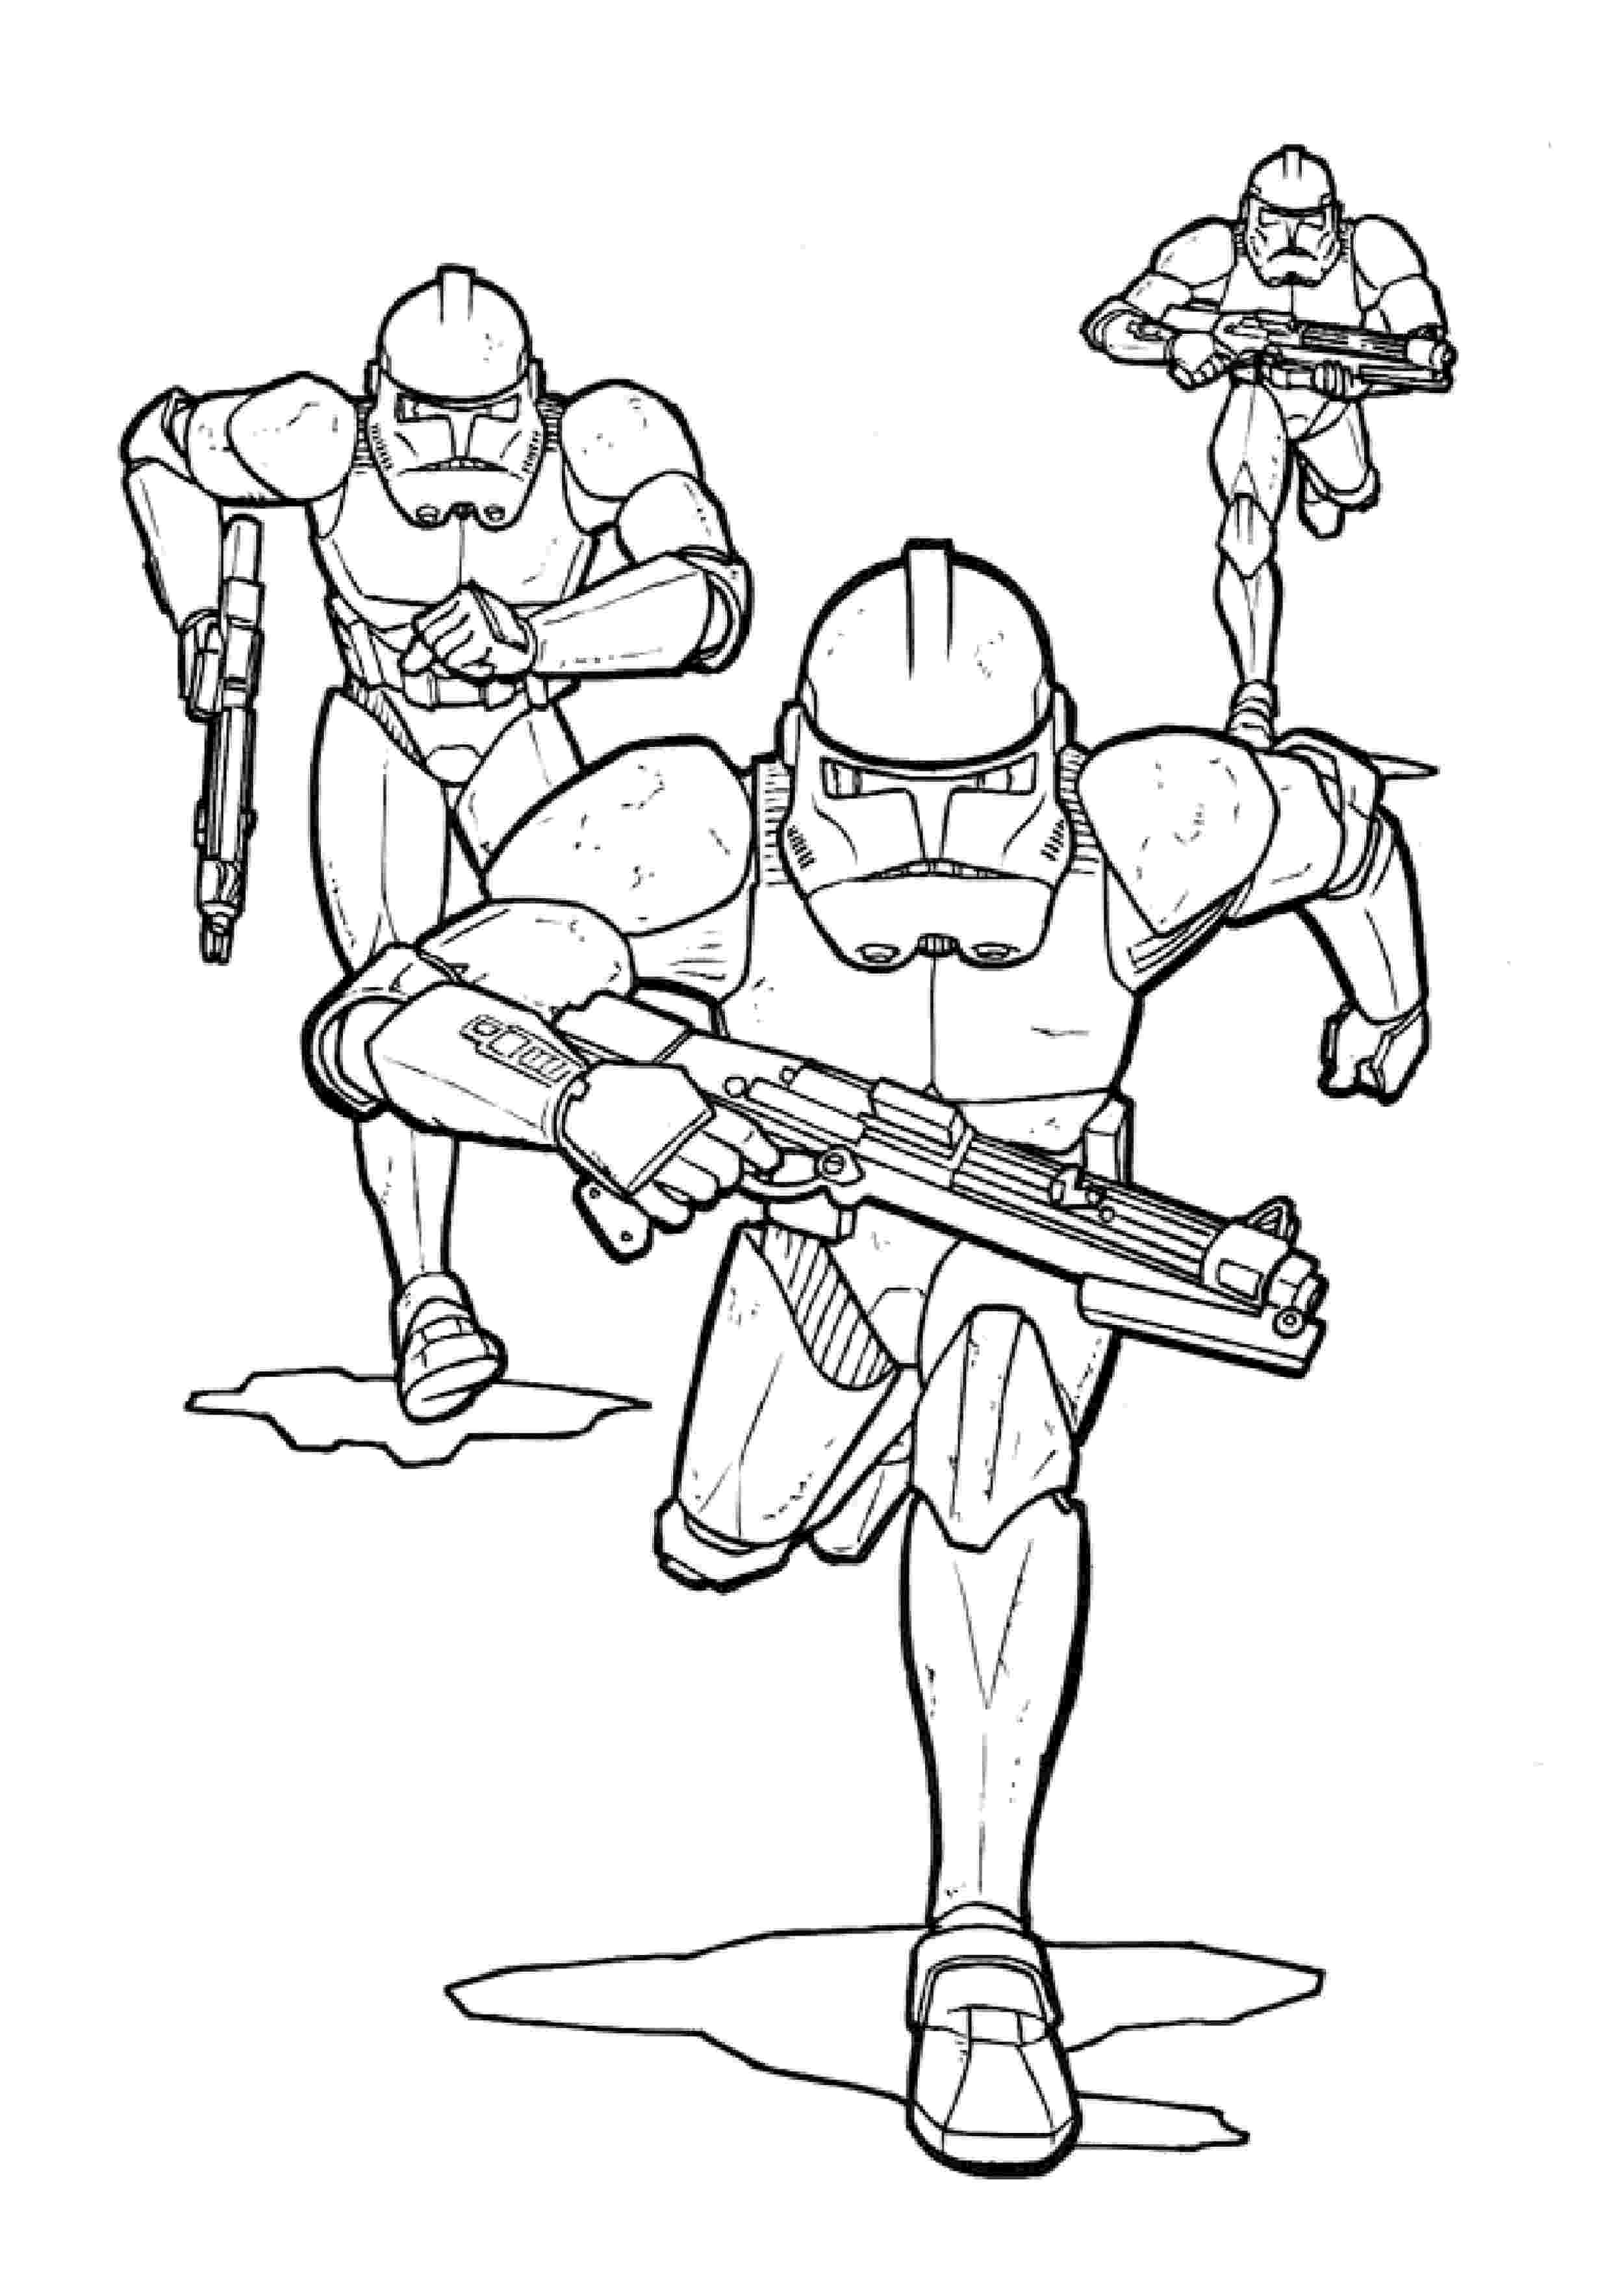 star wars characters coloring pages star wars color page coloring pages for kids cartoon characters star pages coloring wars